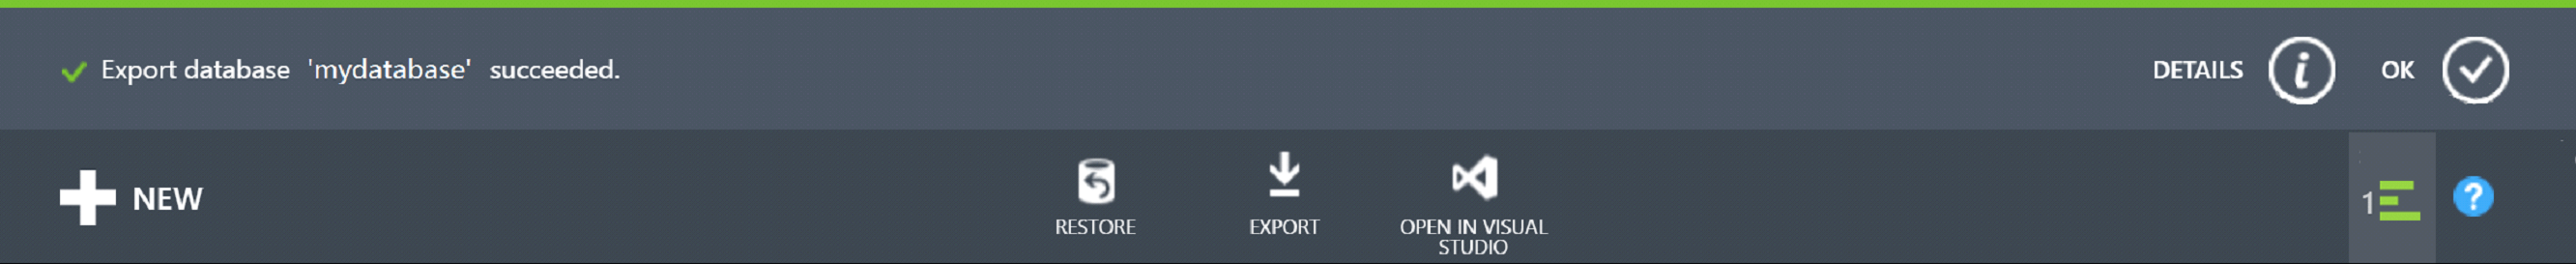 Export Notification